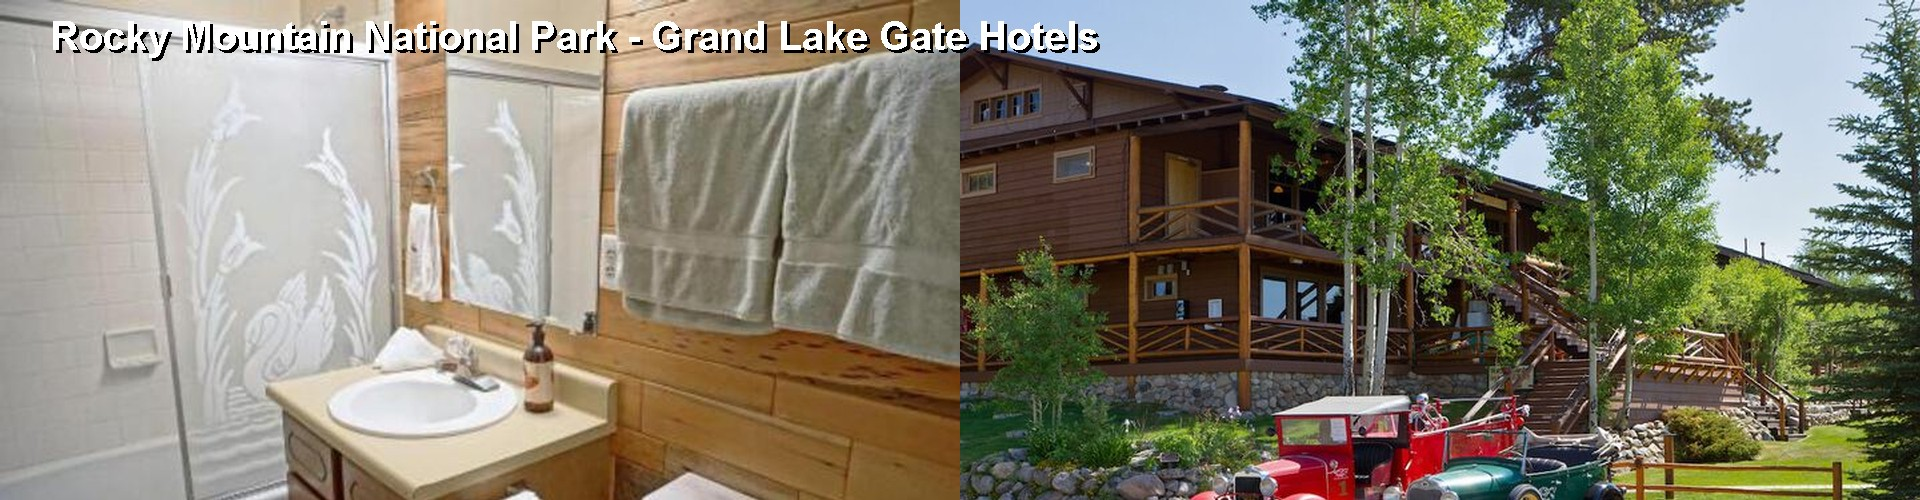 3 Best Hotels near Rocky Mountain National Park - Grand Lake Gate